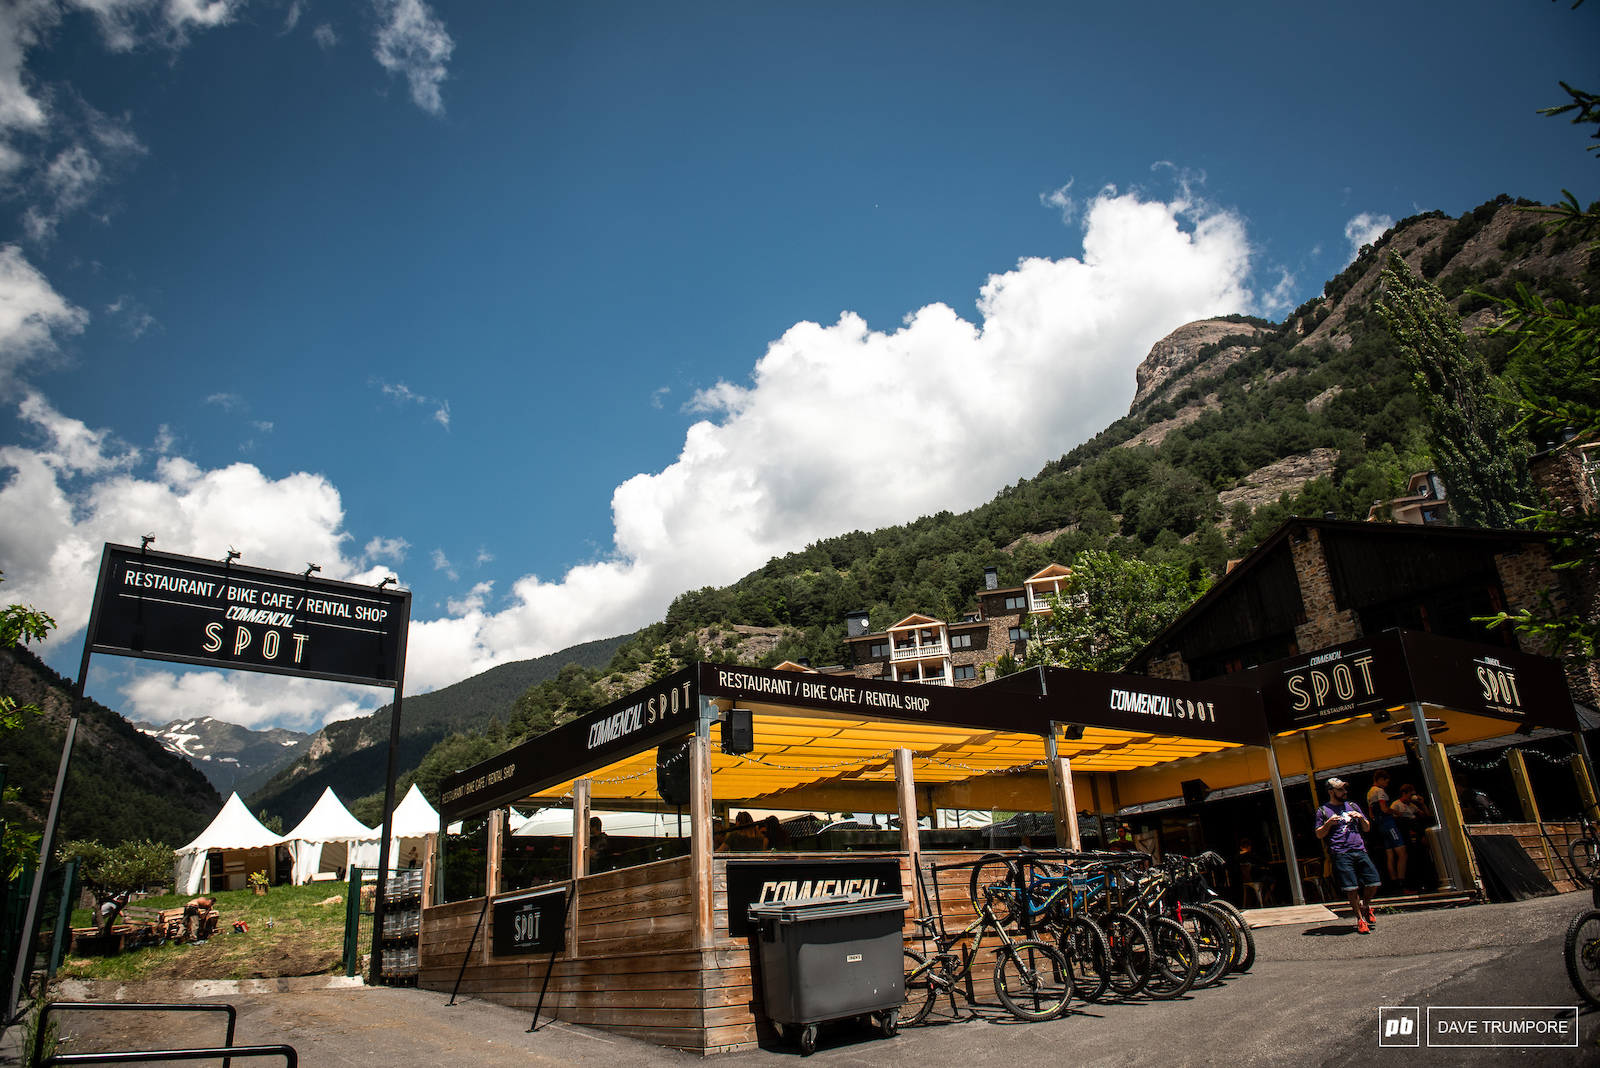 With their global headquarters a kilometer up the road it doesn t get any closer to home than this for Commencal. And once again they have pulled out all the stops with their restaurant bar and party SPOT right across from the finish line.